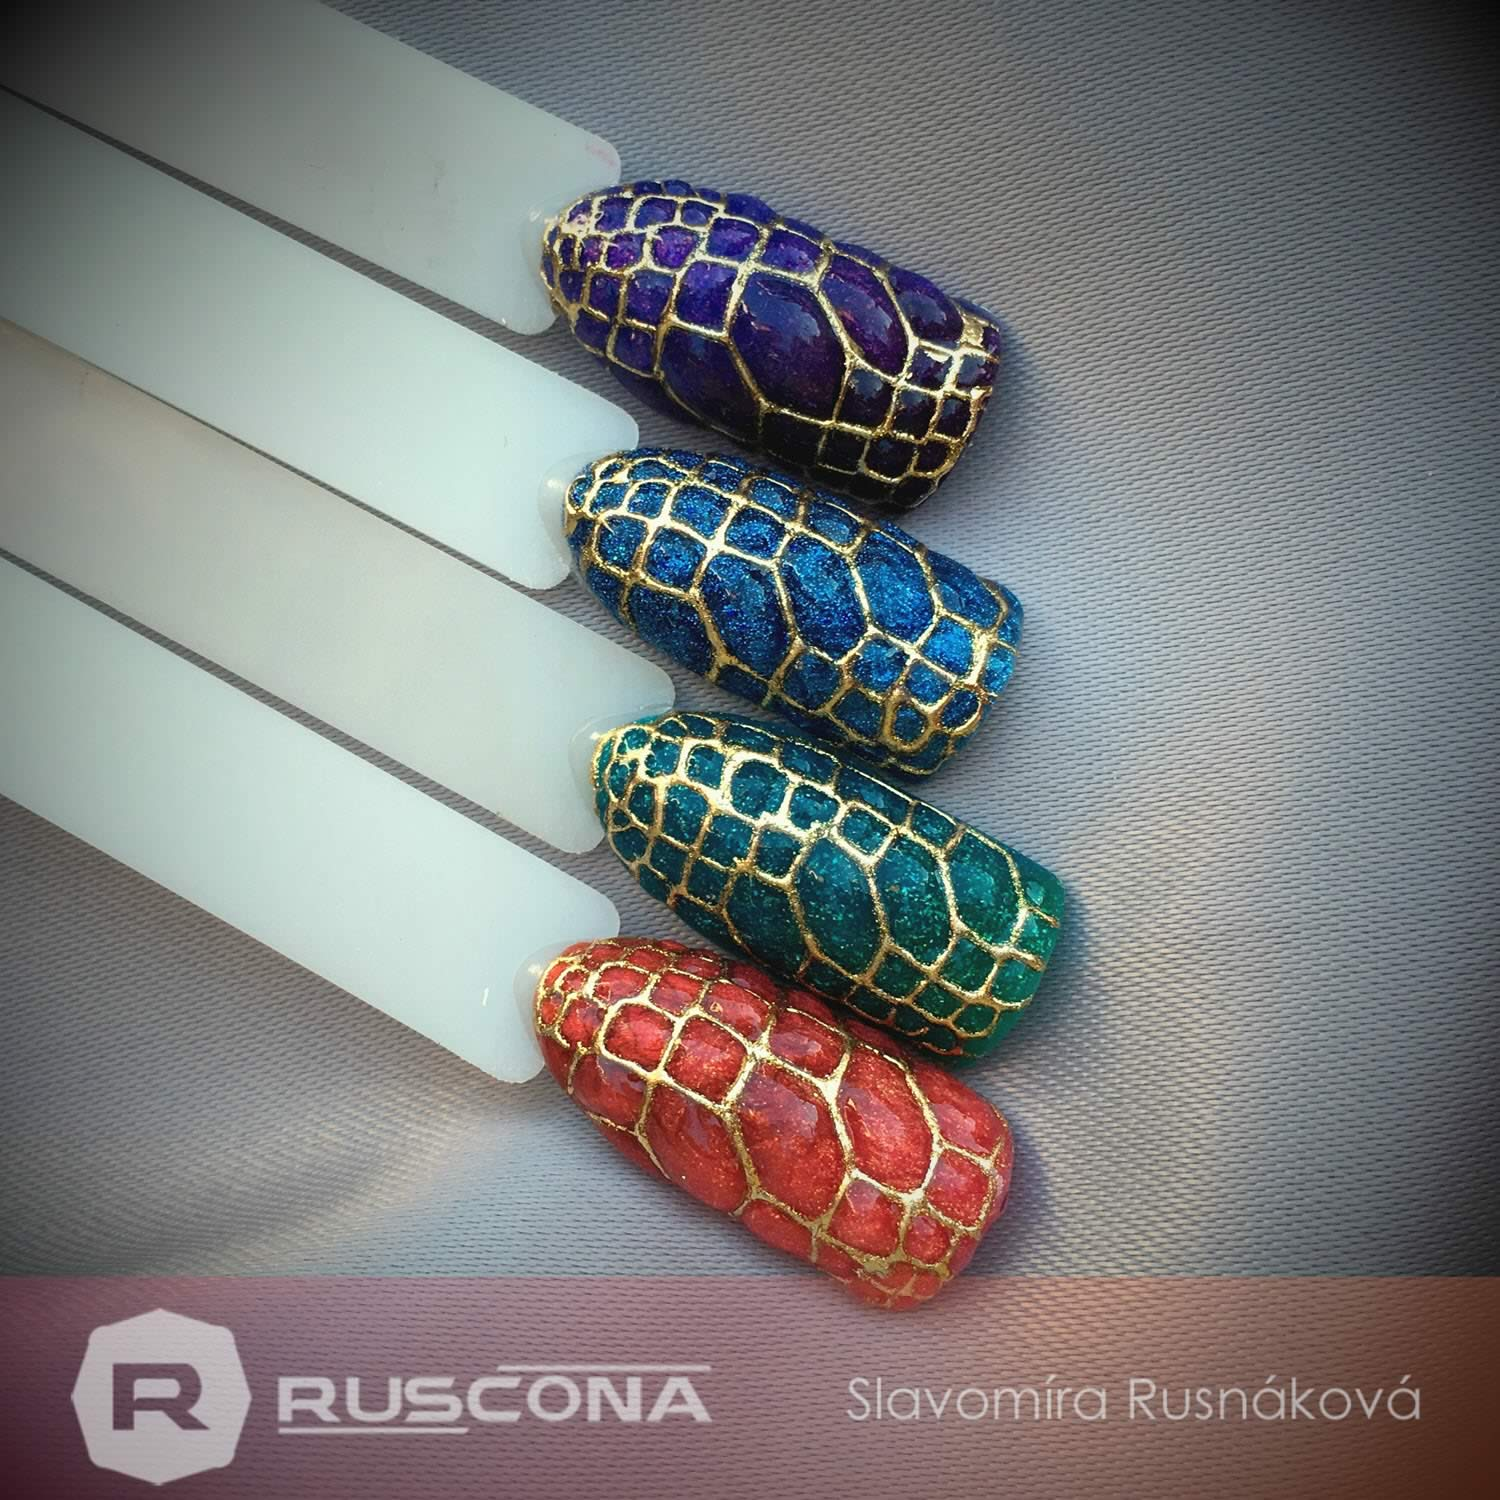 3D effect Ruscona